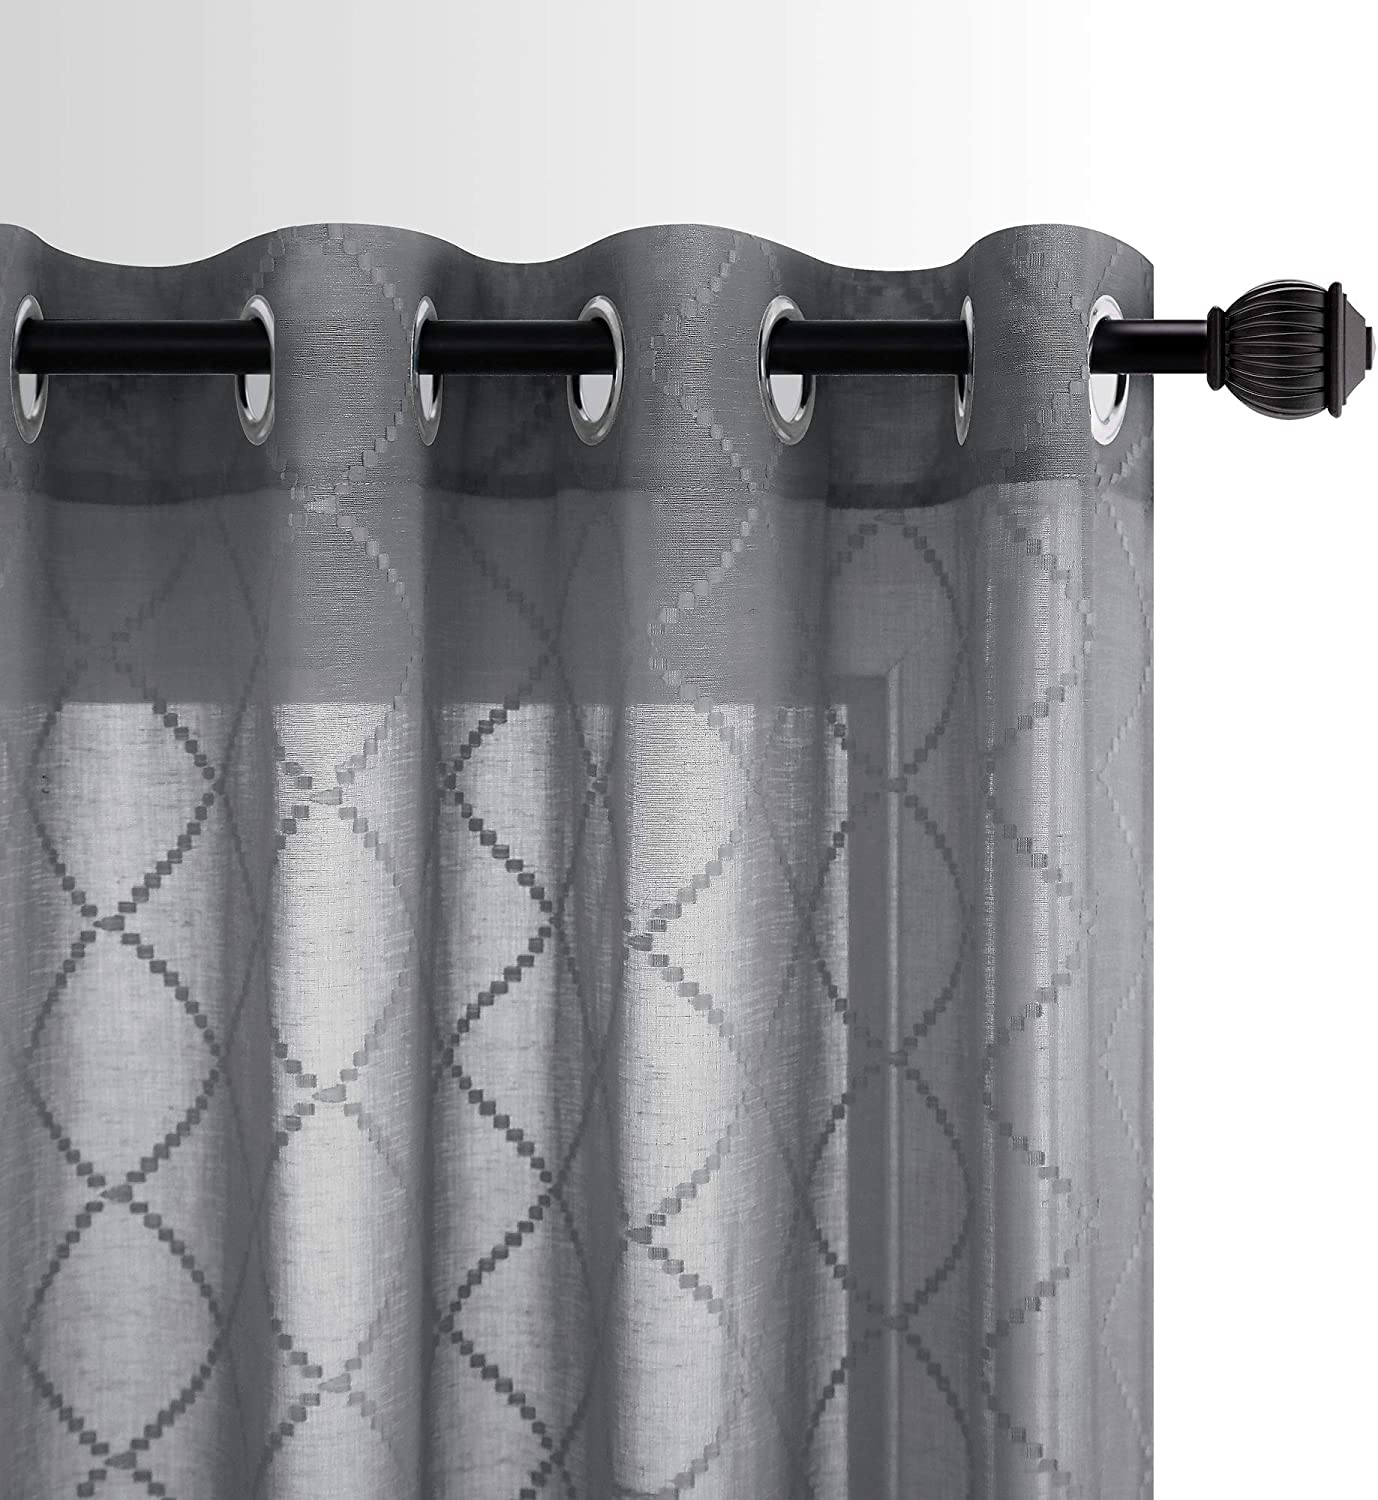 Grey Sheer Curtains 95 Inches Long for Living Room Set 2 Panels Semi Voile Drapes Quatrefoil Patterned Gray Embroidered Grommet Window Curtains for Bedroom Man Home Office Dark Charcoal 52x95 Length